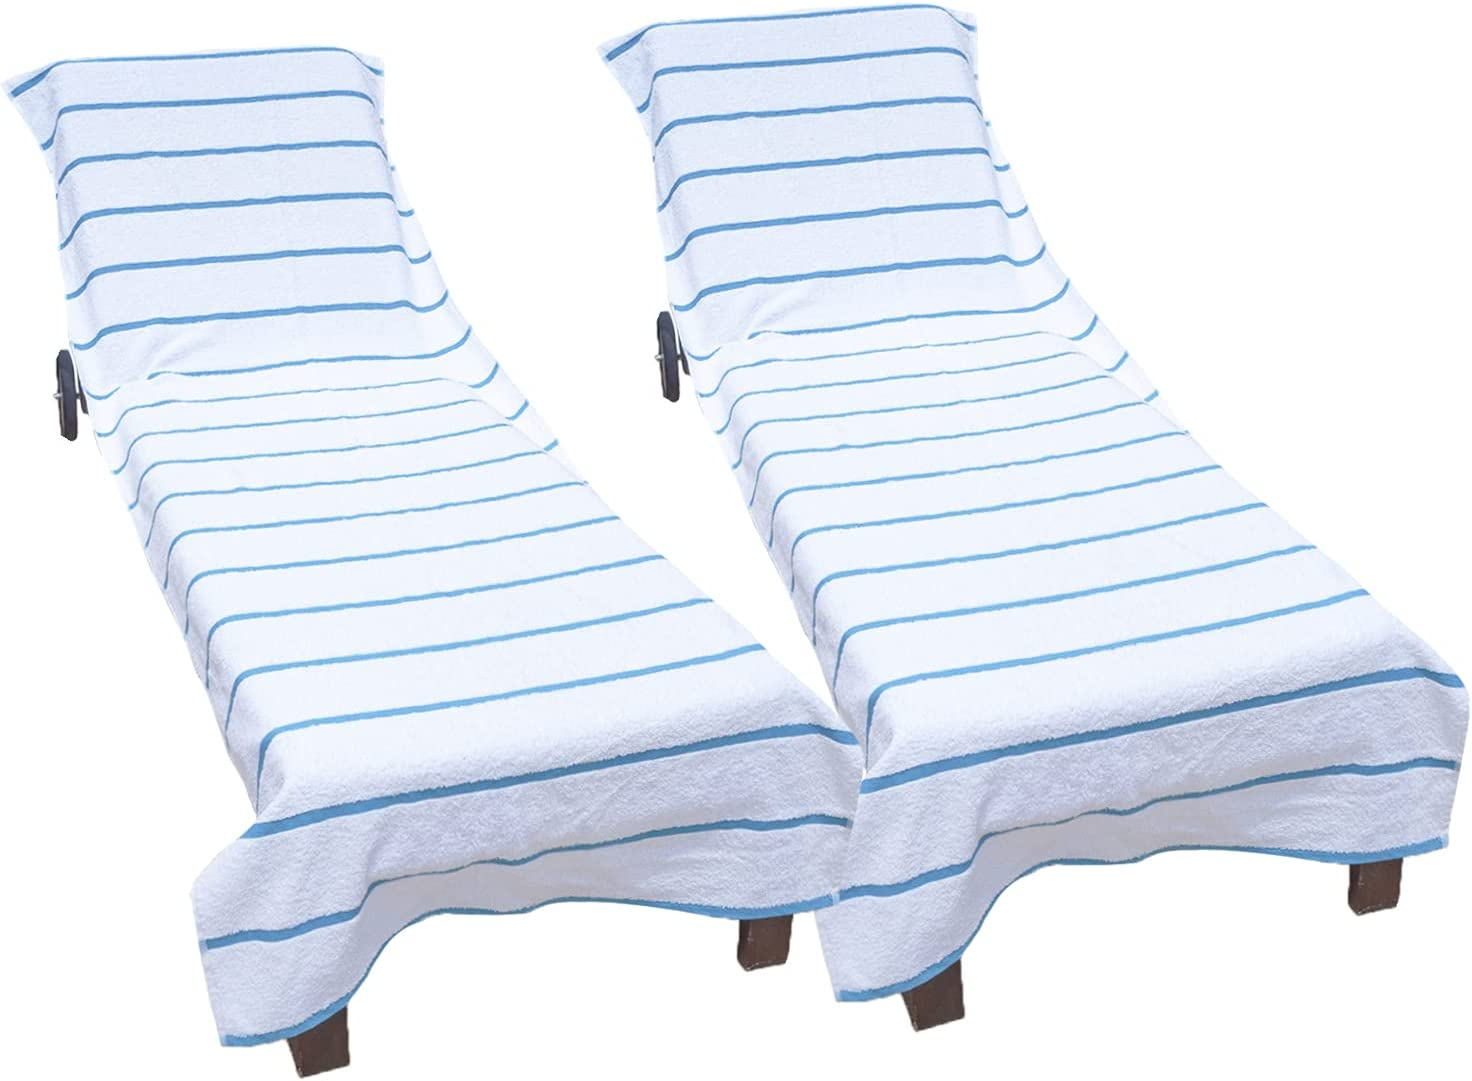 Arkwright Pool Chair Covers (Oversized:30x85 Inch, 2-Pack), Cotton Chaise Lounge Cover with 8 Inch Deep Pocket to Fit Any Beach Chair (Blue)